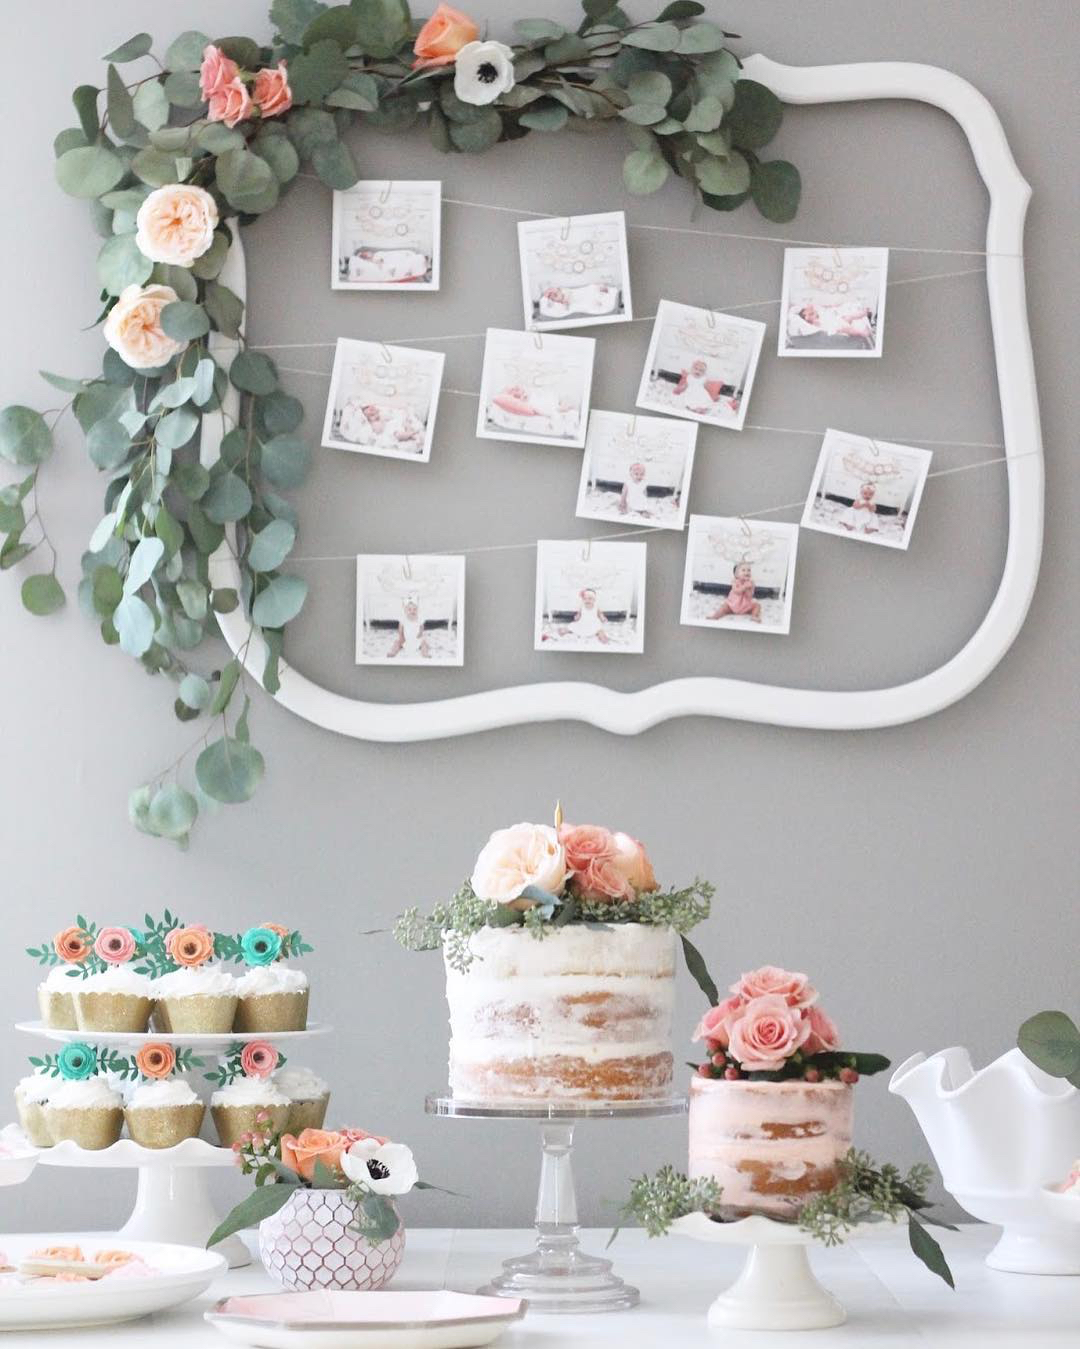 Six Ways to Decorate Your Summer Soirée